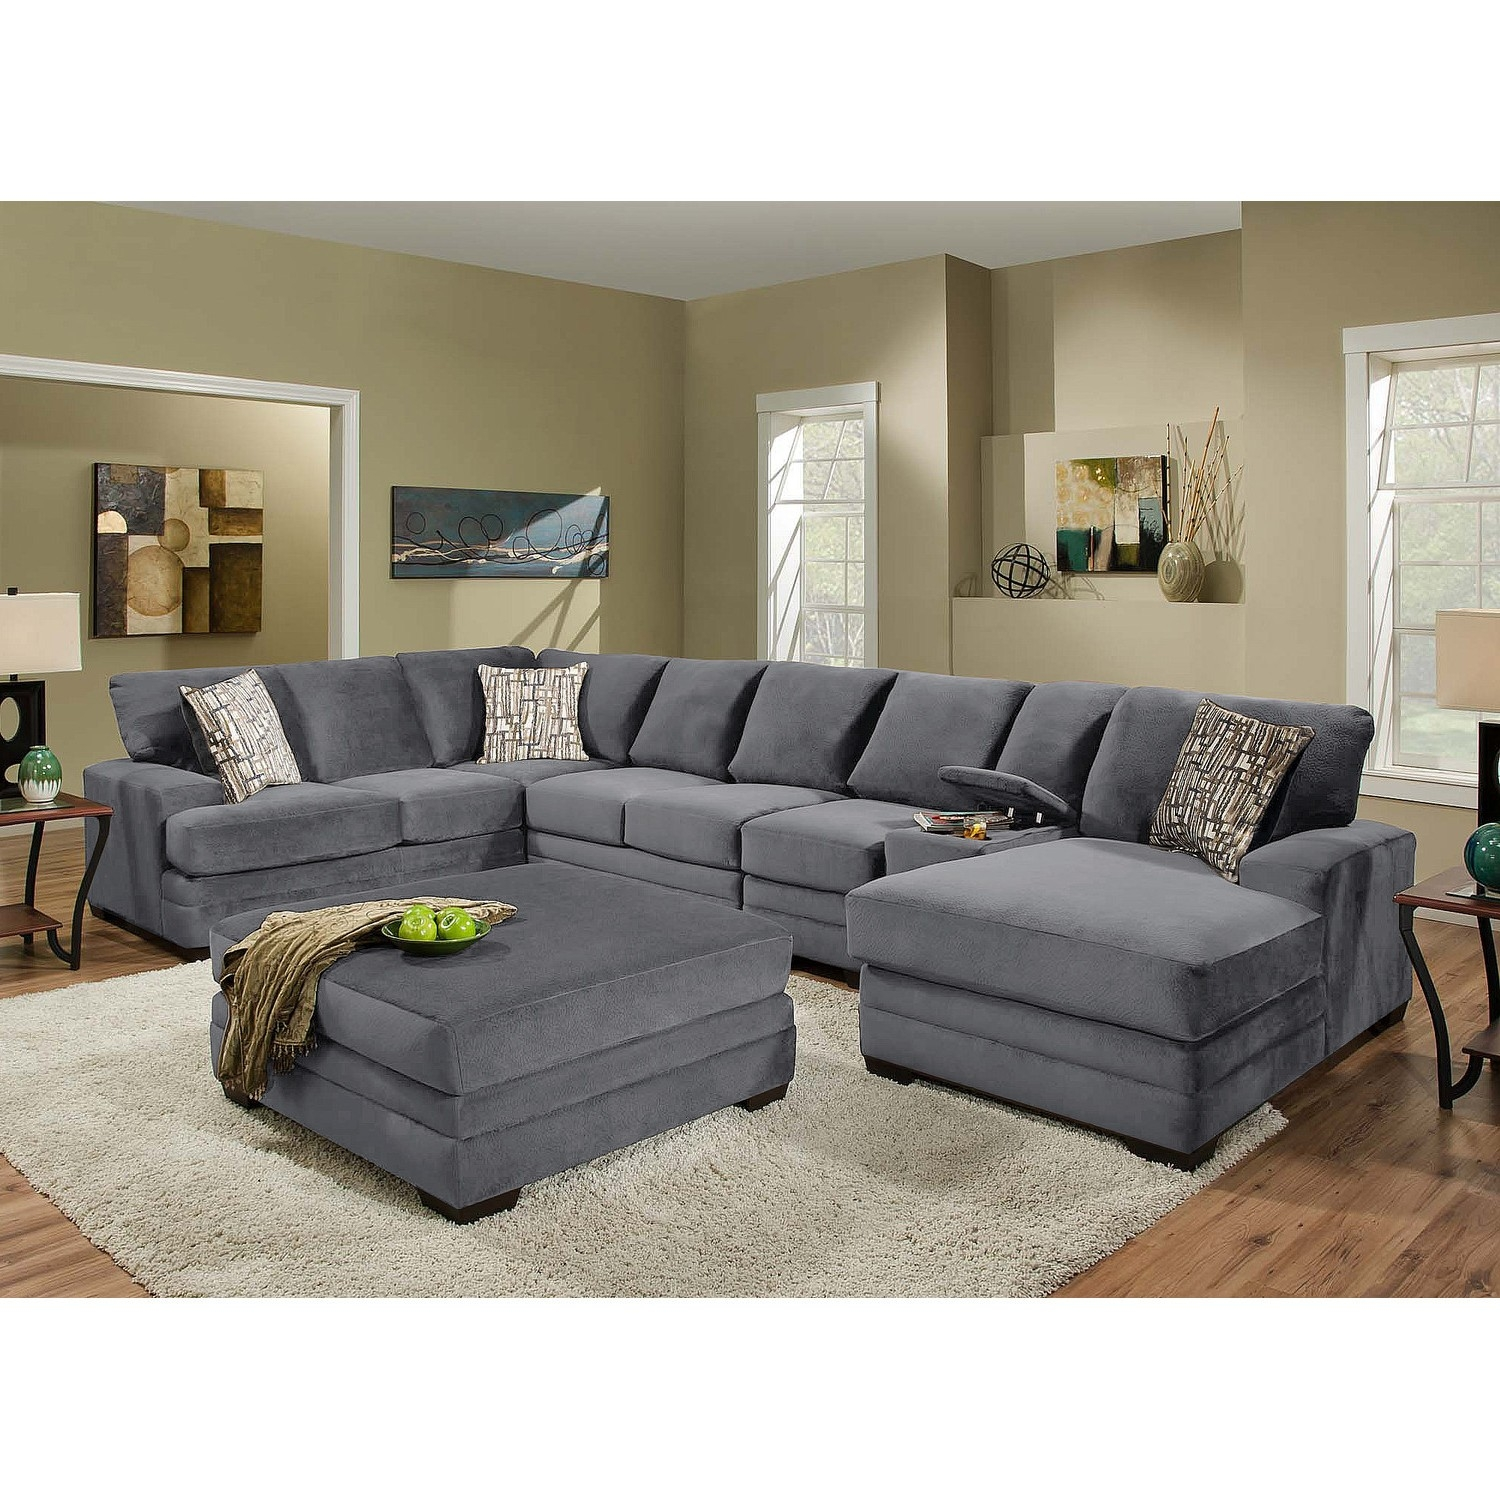 Exquisite Grey Sectional Sofas Sofas Sectionals Modern Grey With Down Filled Sectional Sofas (Image 4 of 15)